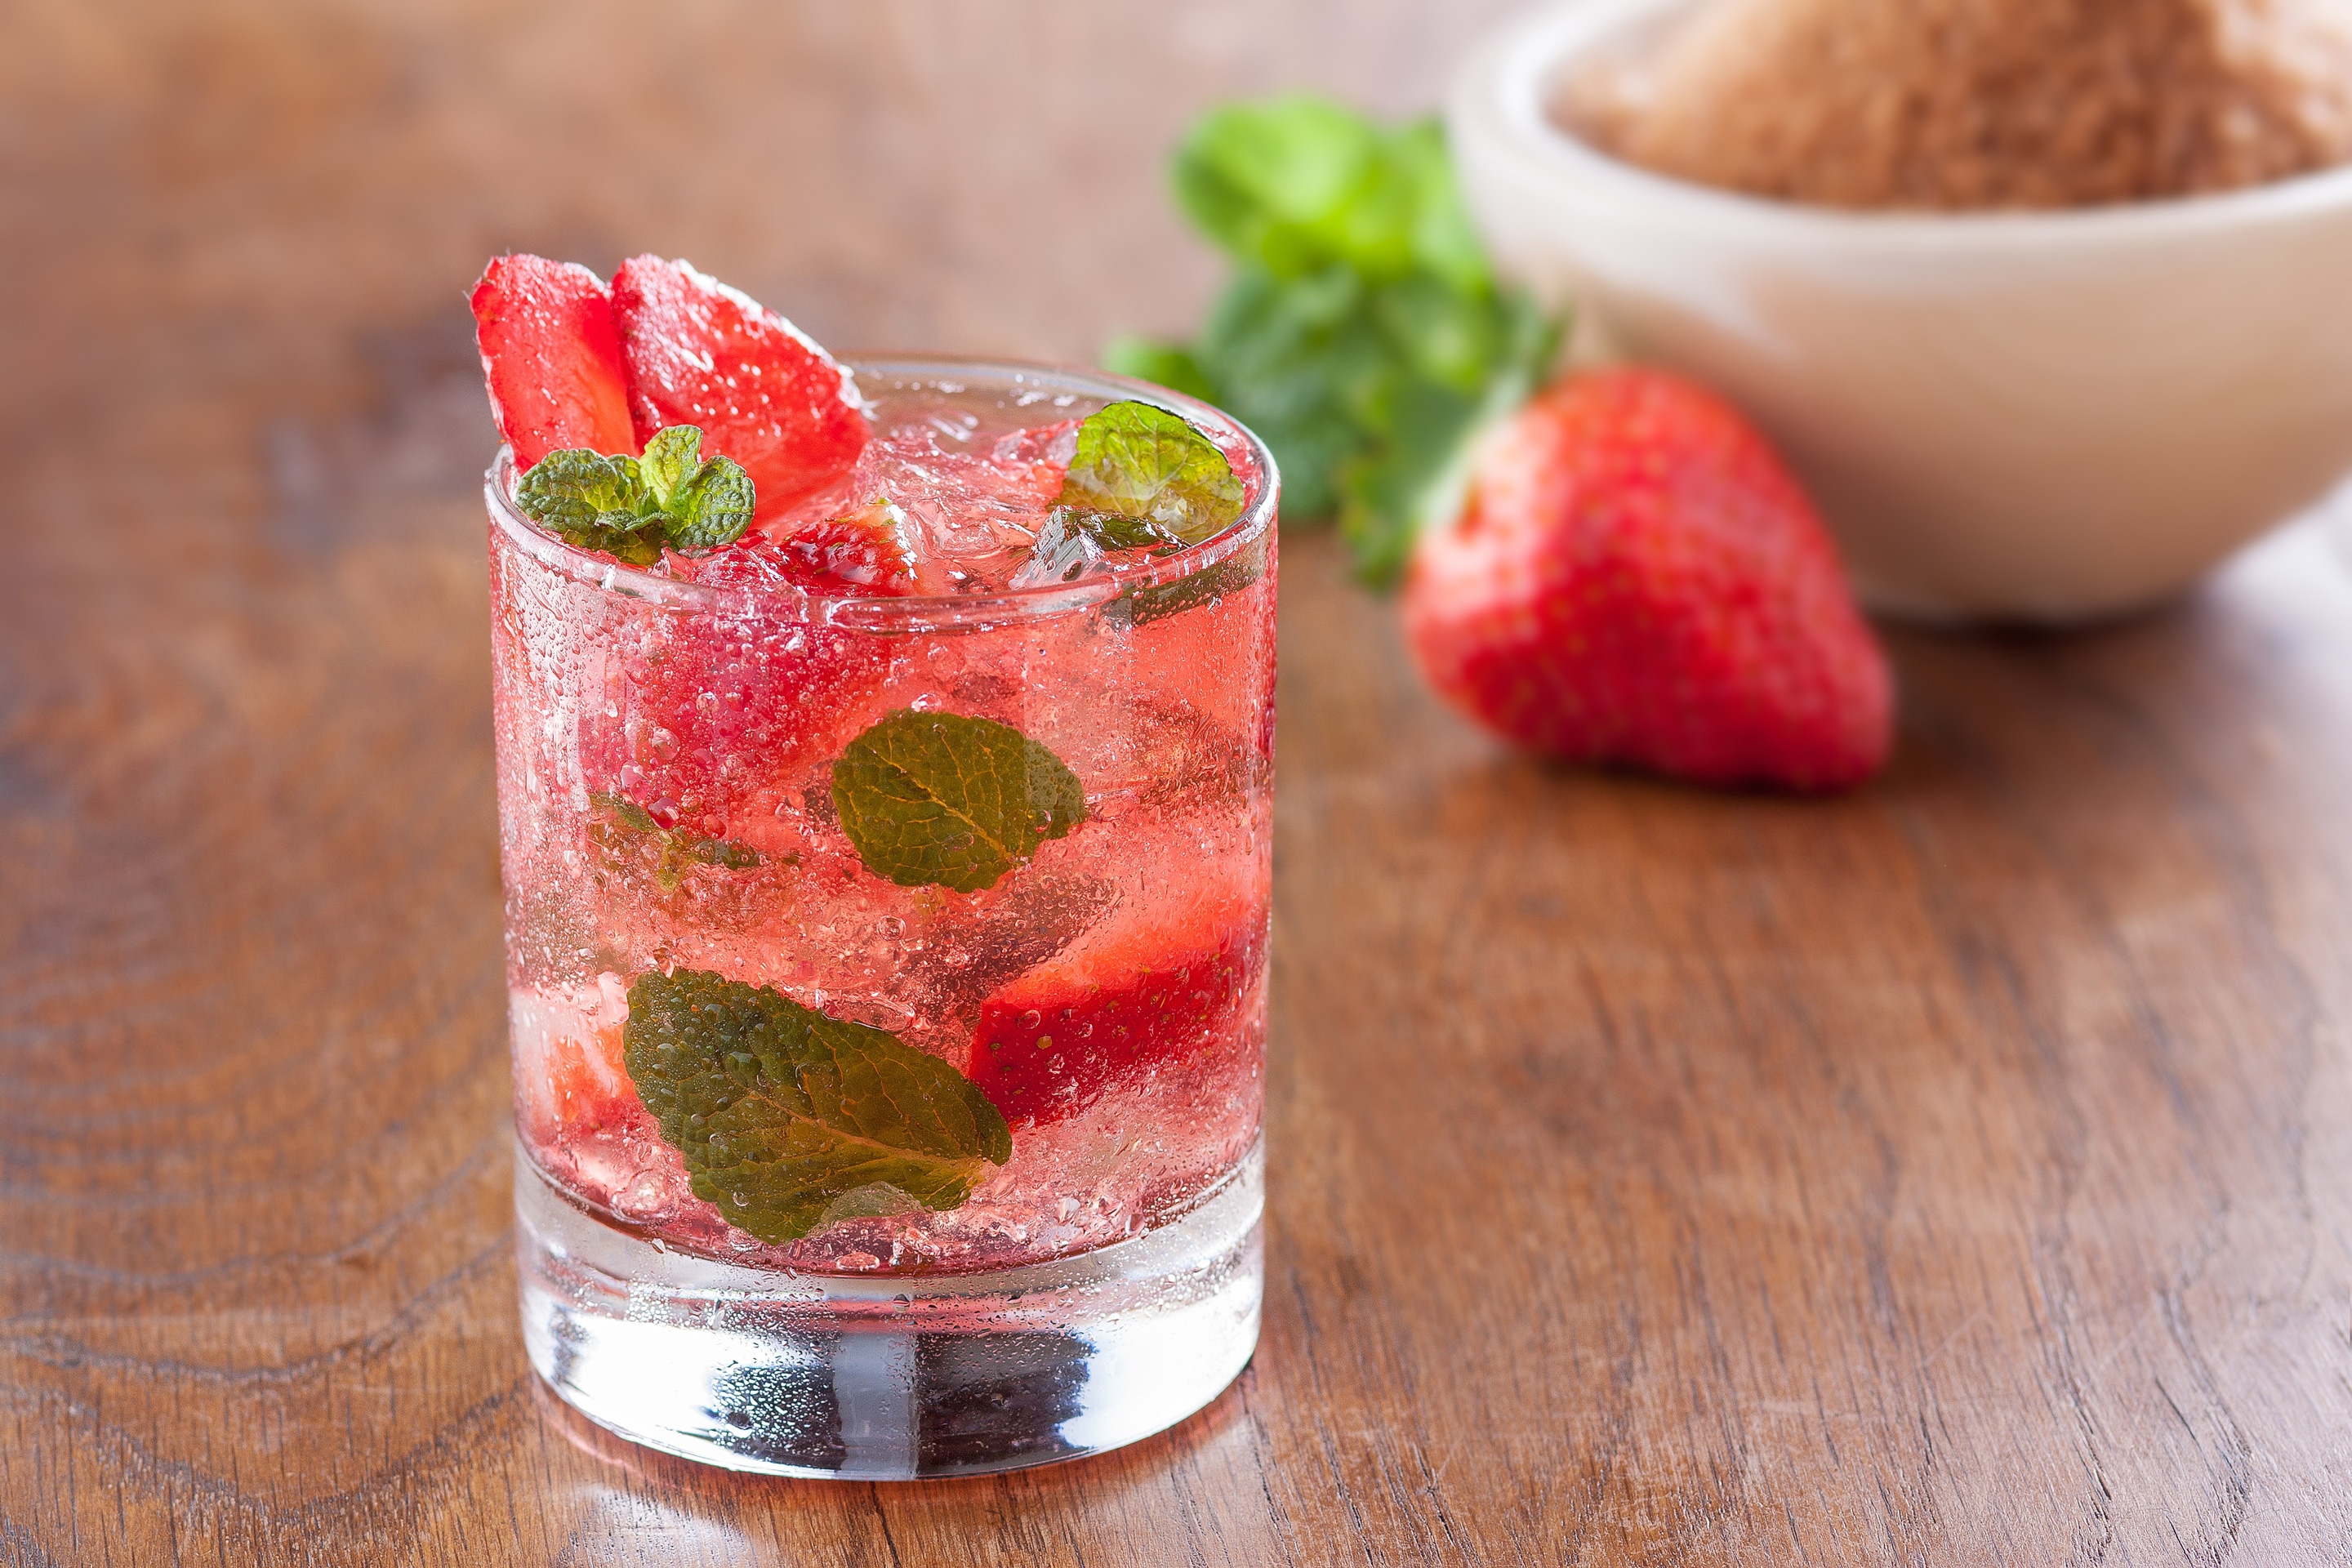 World's Best Strawberry Mojito Recipe from the Florida Strawberry Growers Association